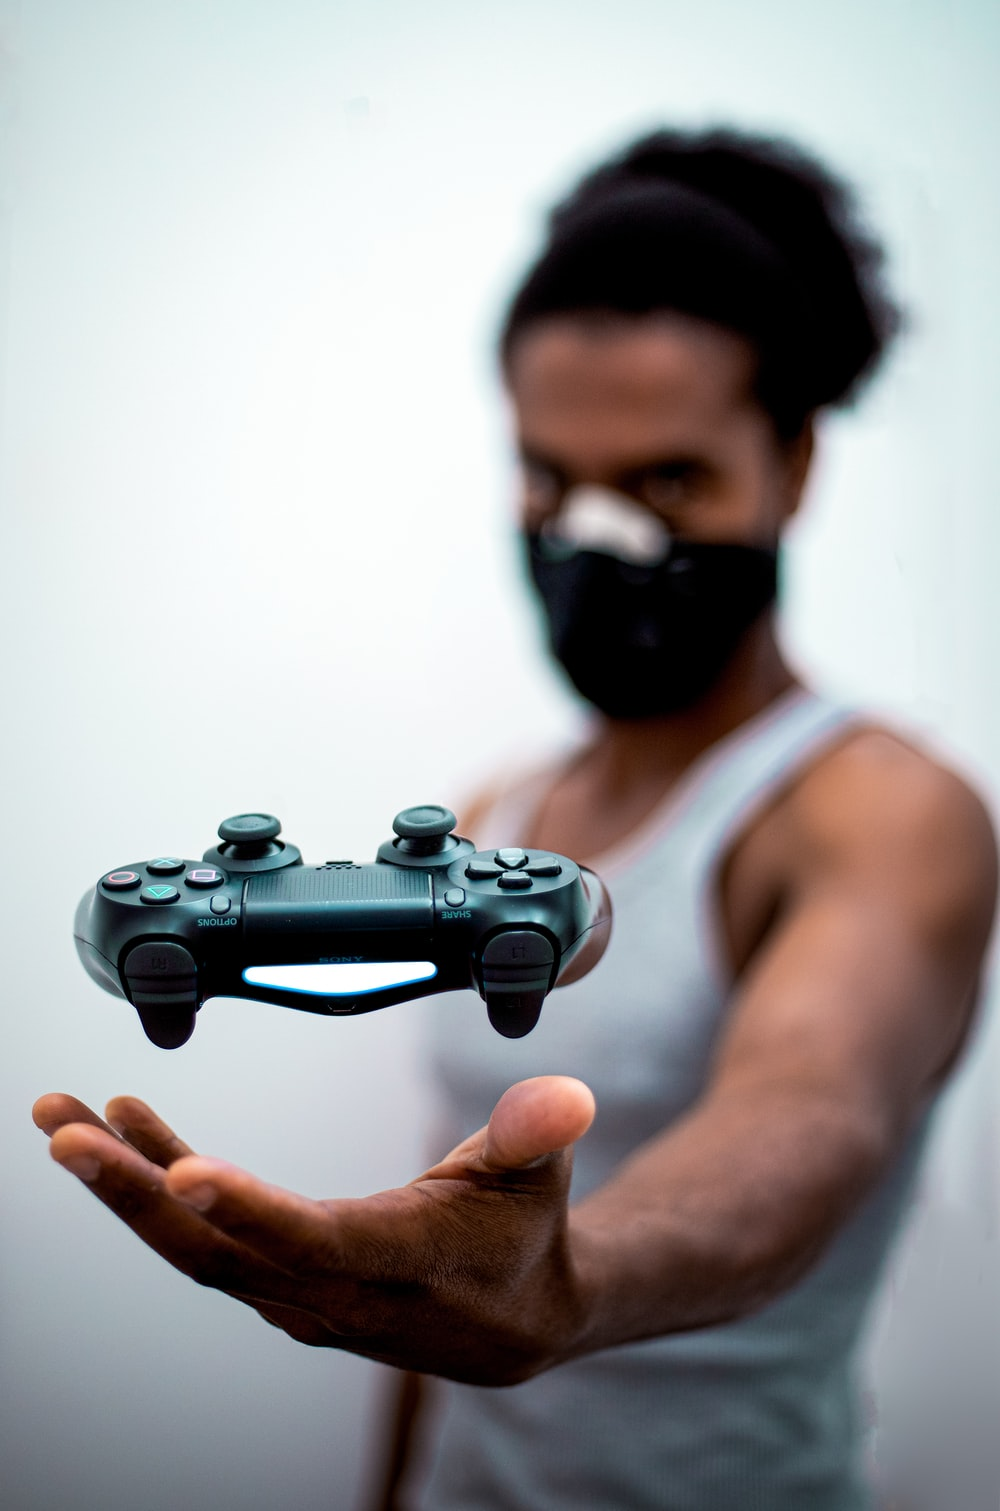 man tossing game controller. Representative of gaming and esports across the world